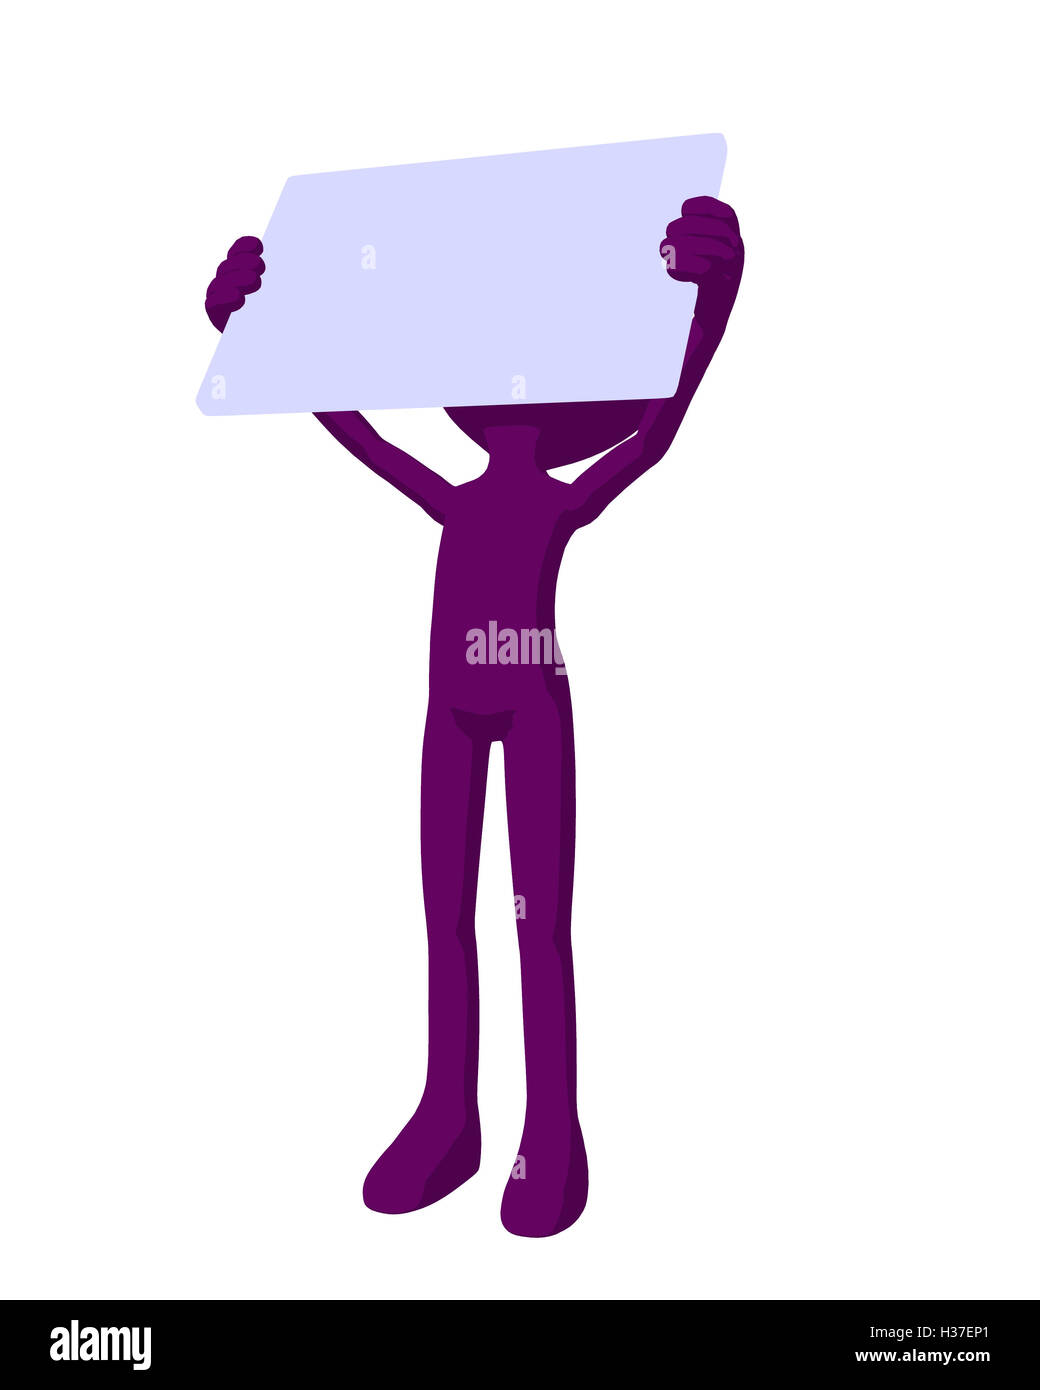 Cute Purple Silhouette Guy Holding a Blank Business Card Stock Photo ...